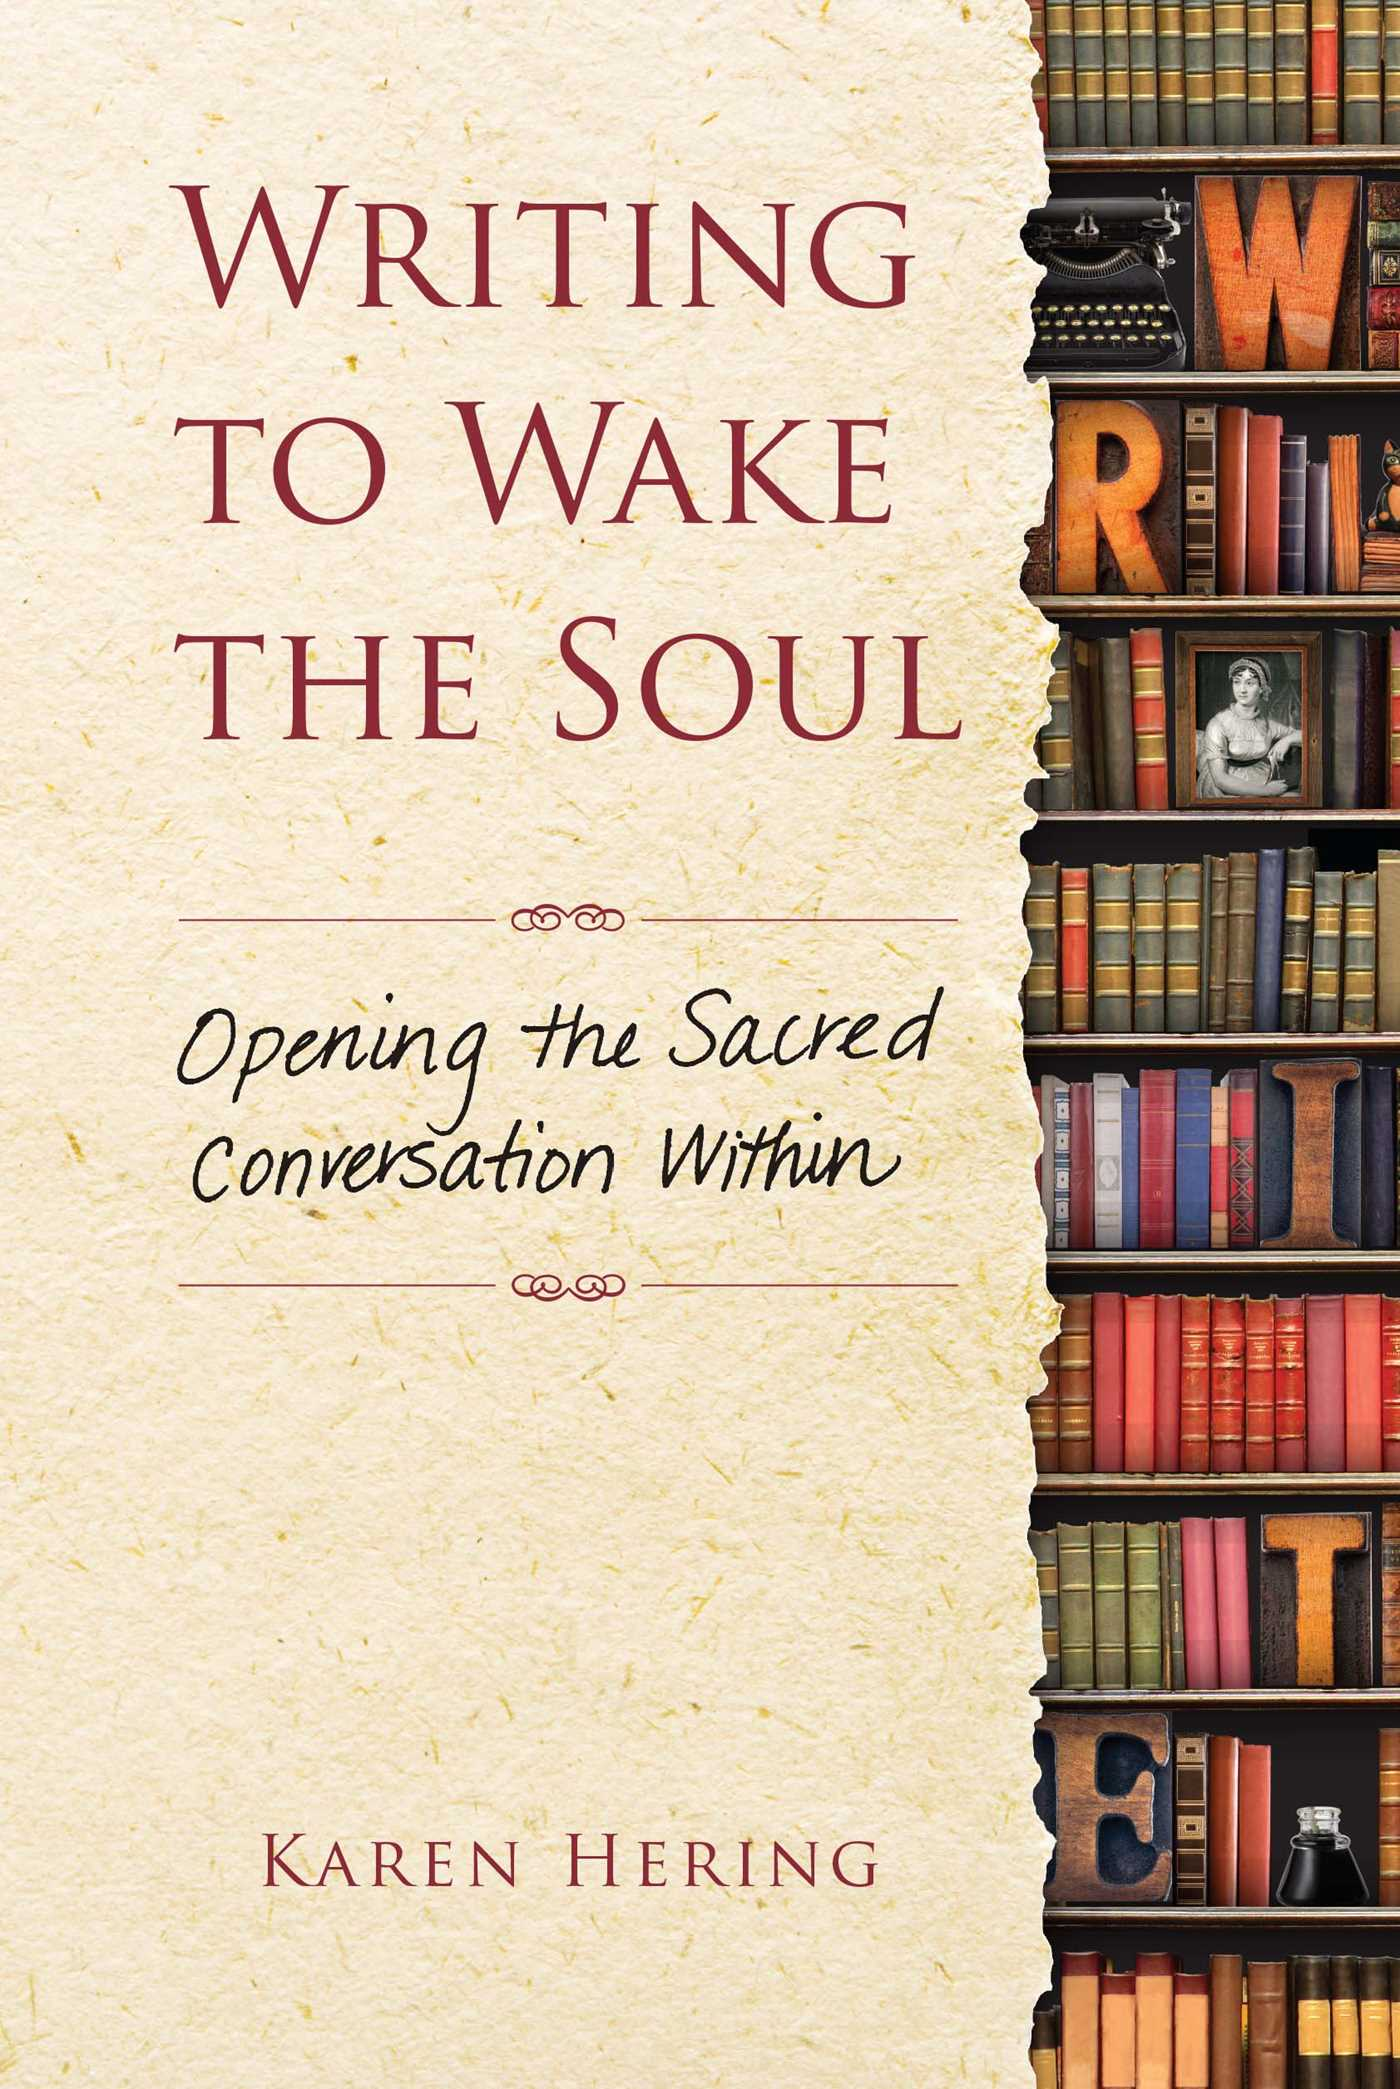 Writing to wake the soul 9781582705996 hr